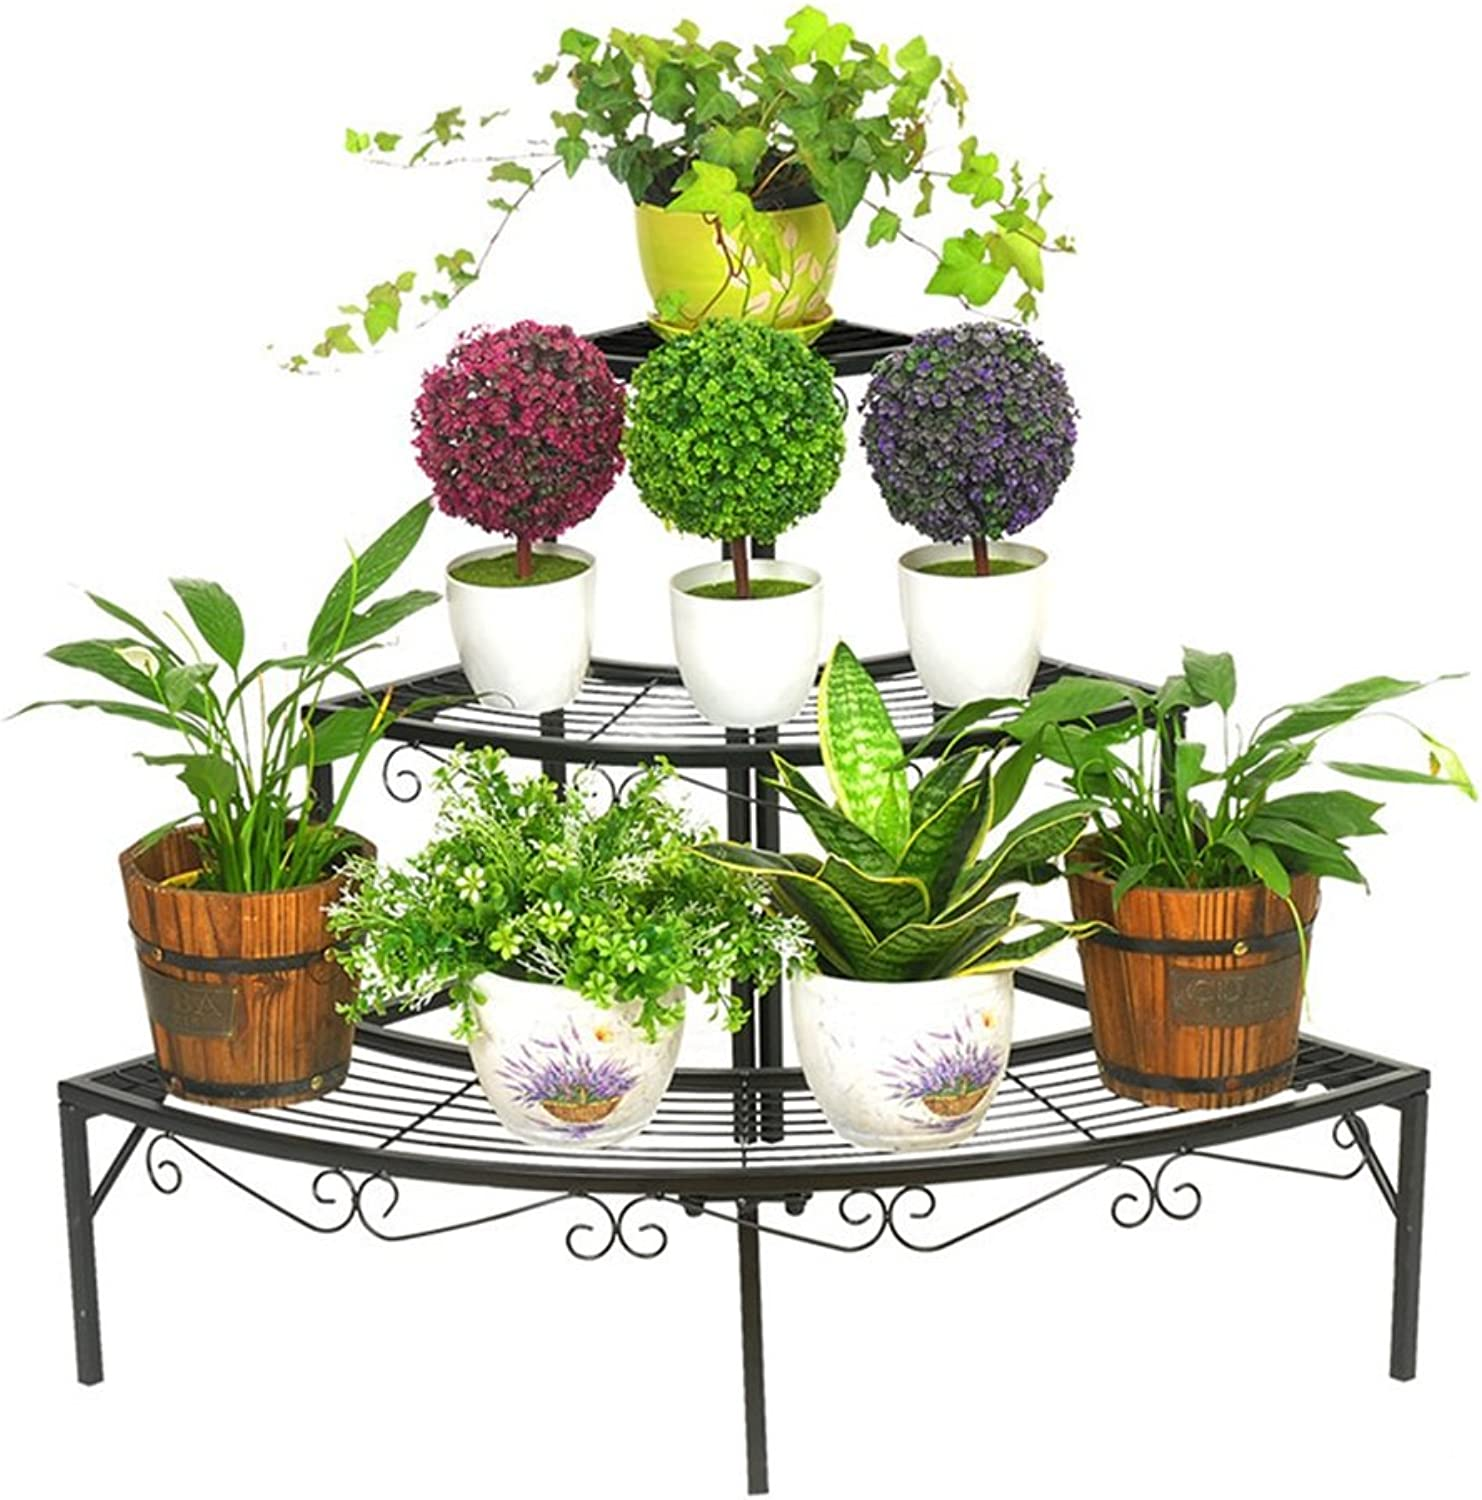 SYF Three-Layer Multi-Layer Anti-Corrosion Plant Display Frame Living Room Bedroom Balcony Decoration Garden Metal Shelf Indoor Outdoor Flower Stand Floor Stand 84x60x60CM A+